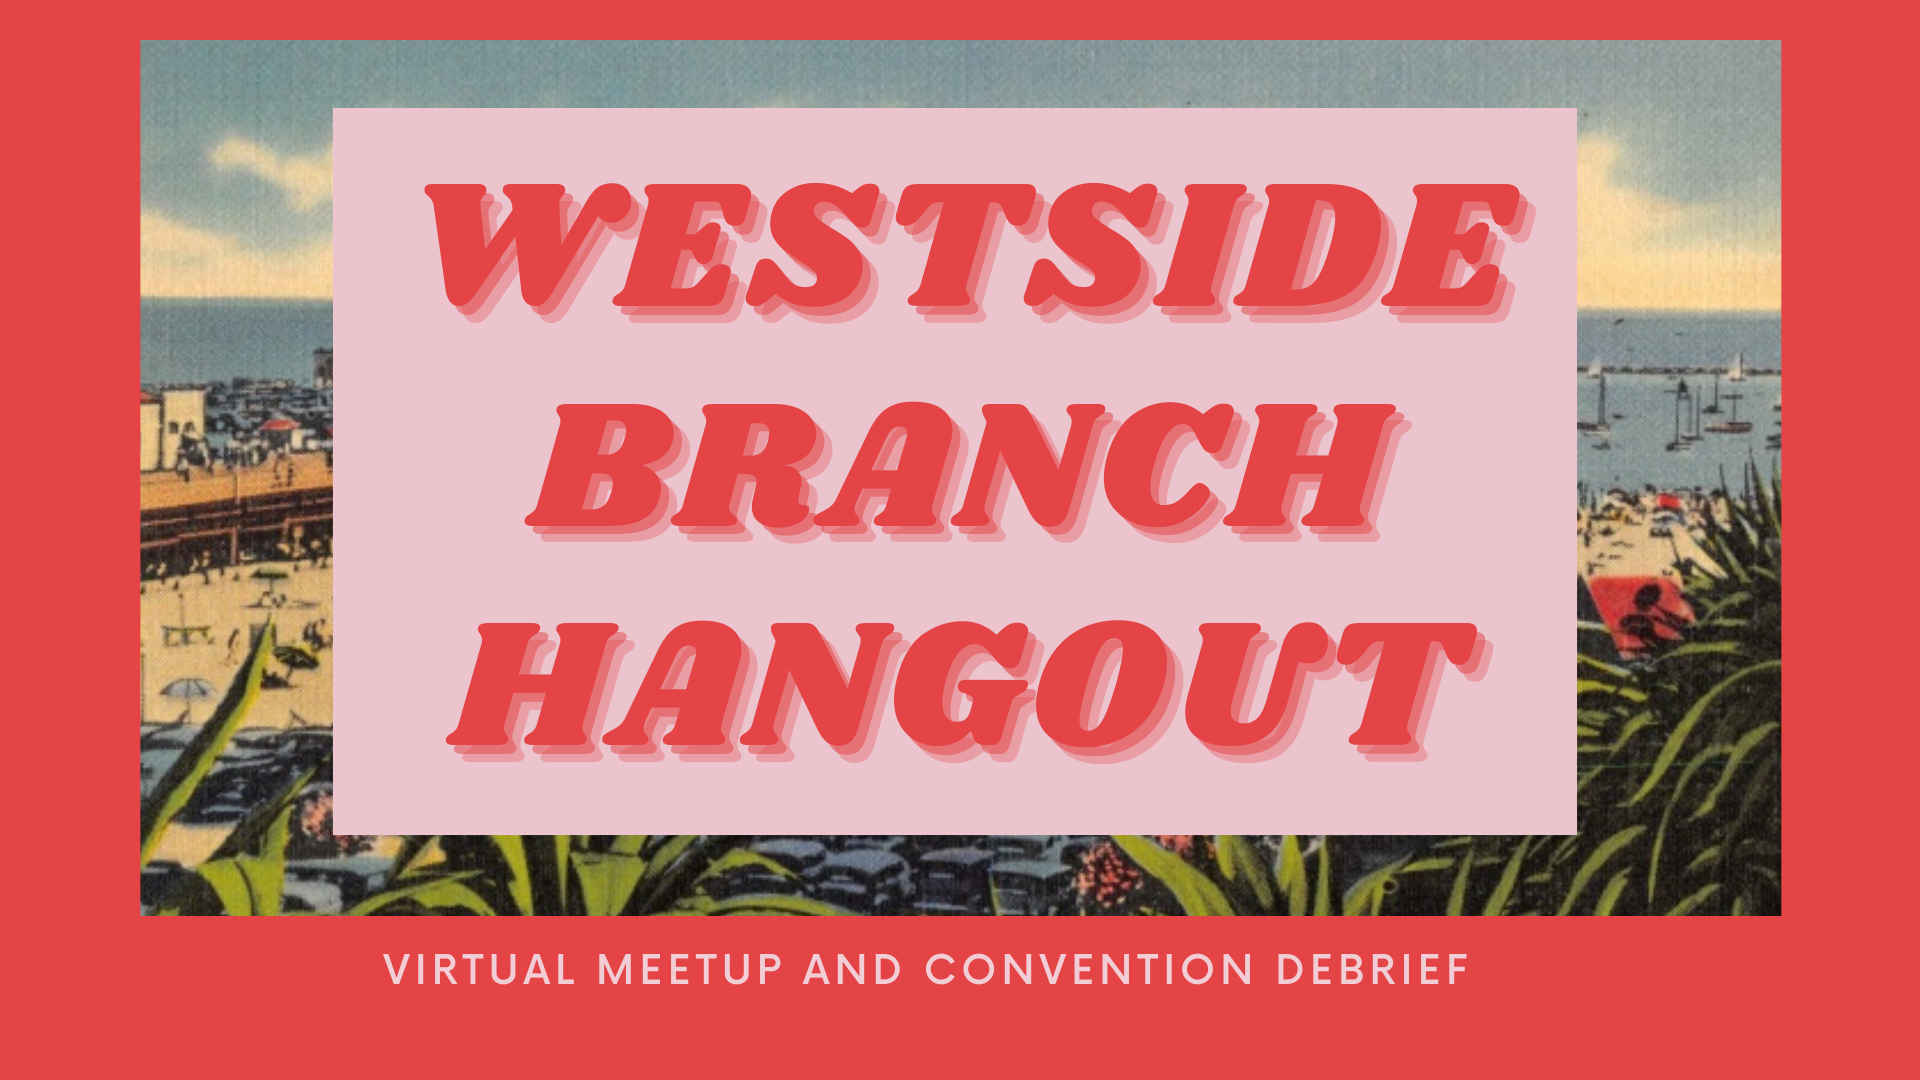 Red banner with beach background that says Westside Branch Hangout Virtual Meetup and Convention Debrief